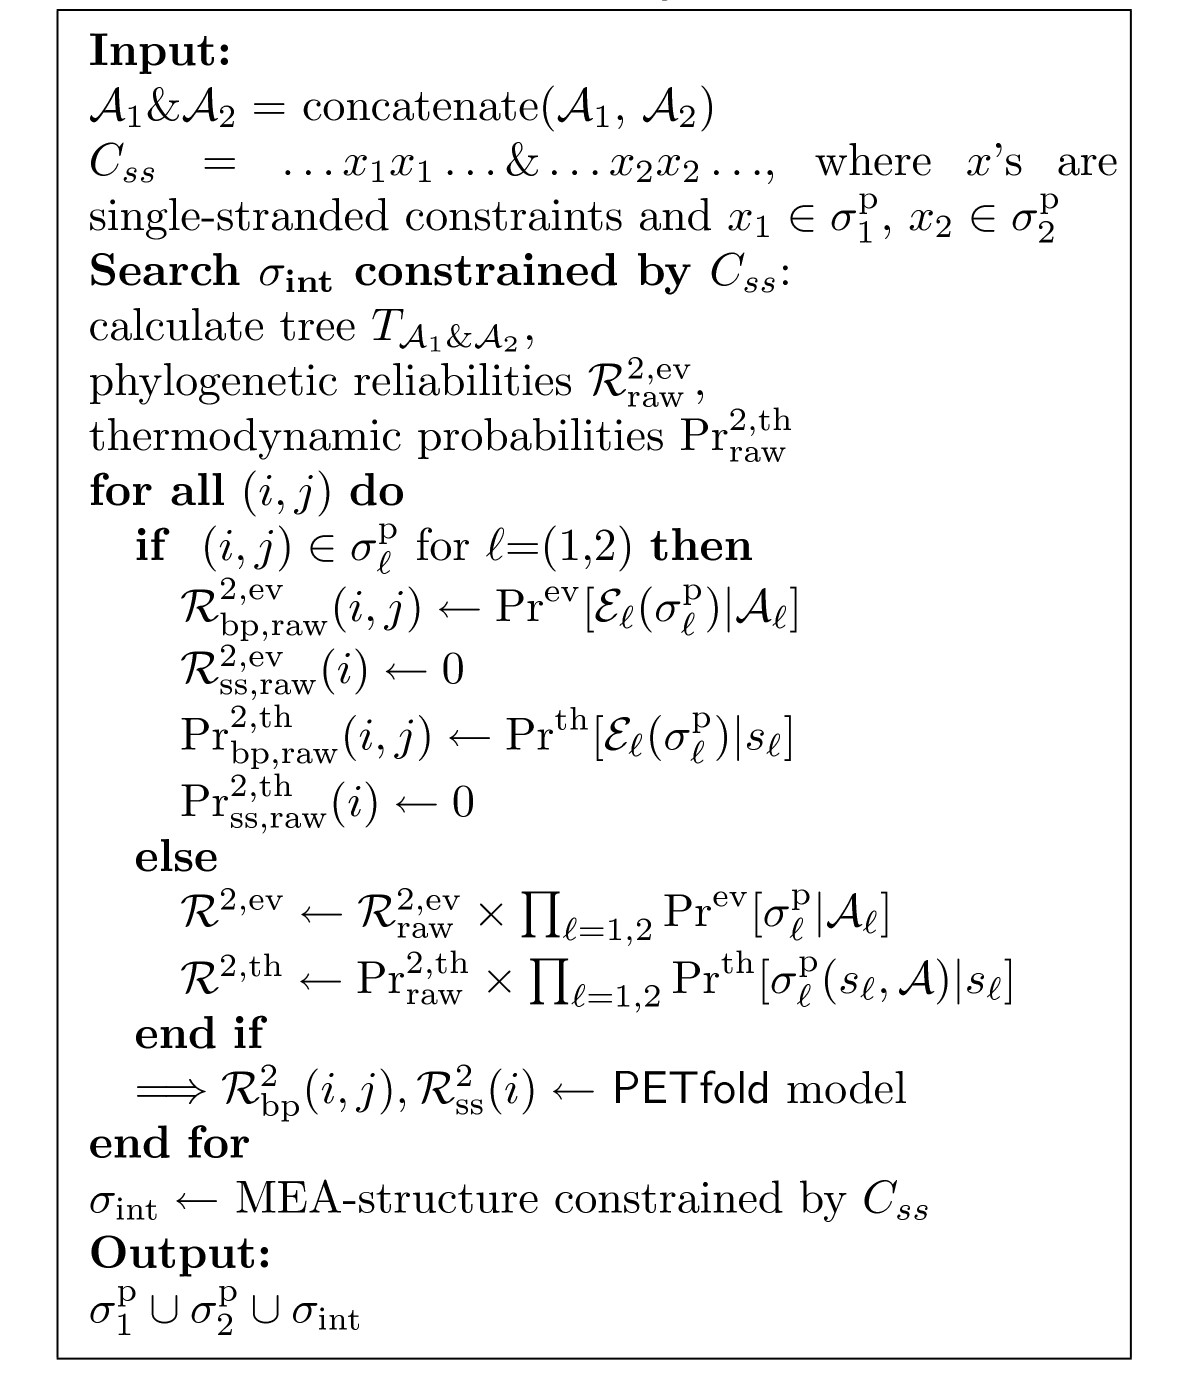 https://static-content.springer.com/image/art%3A10.1186%2F1748-7188-5-22/MediaObjects/13015_2010_Article_95_Fig2_HTML.jpg